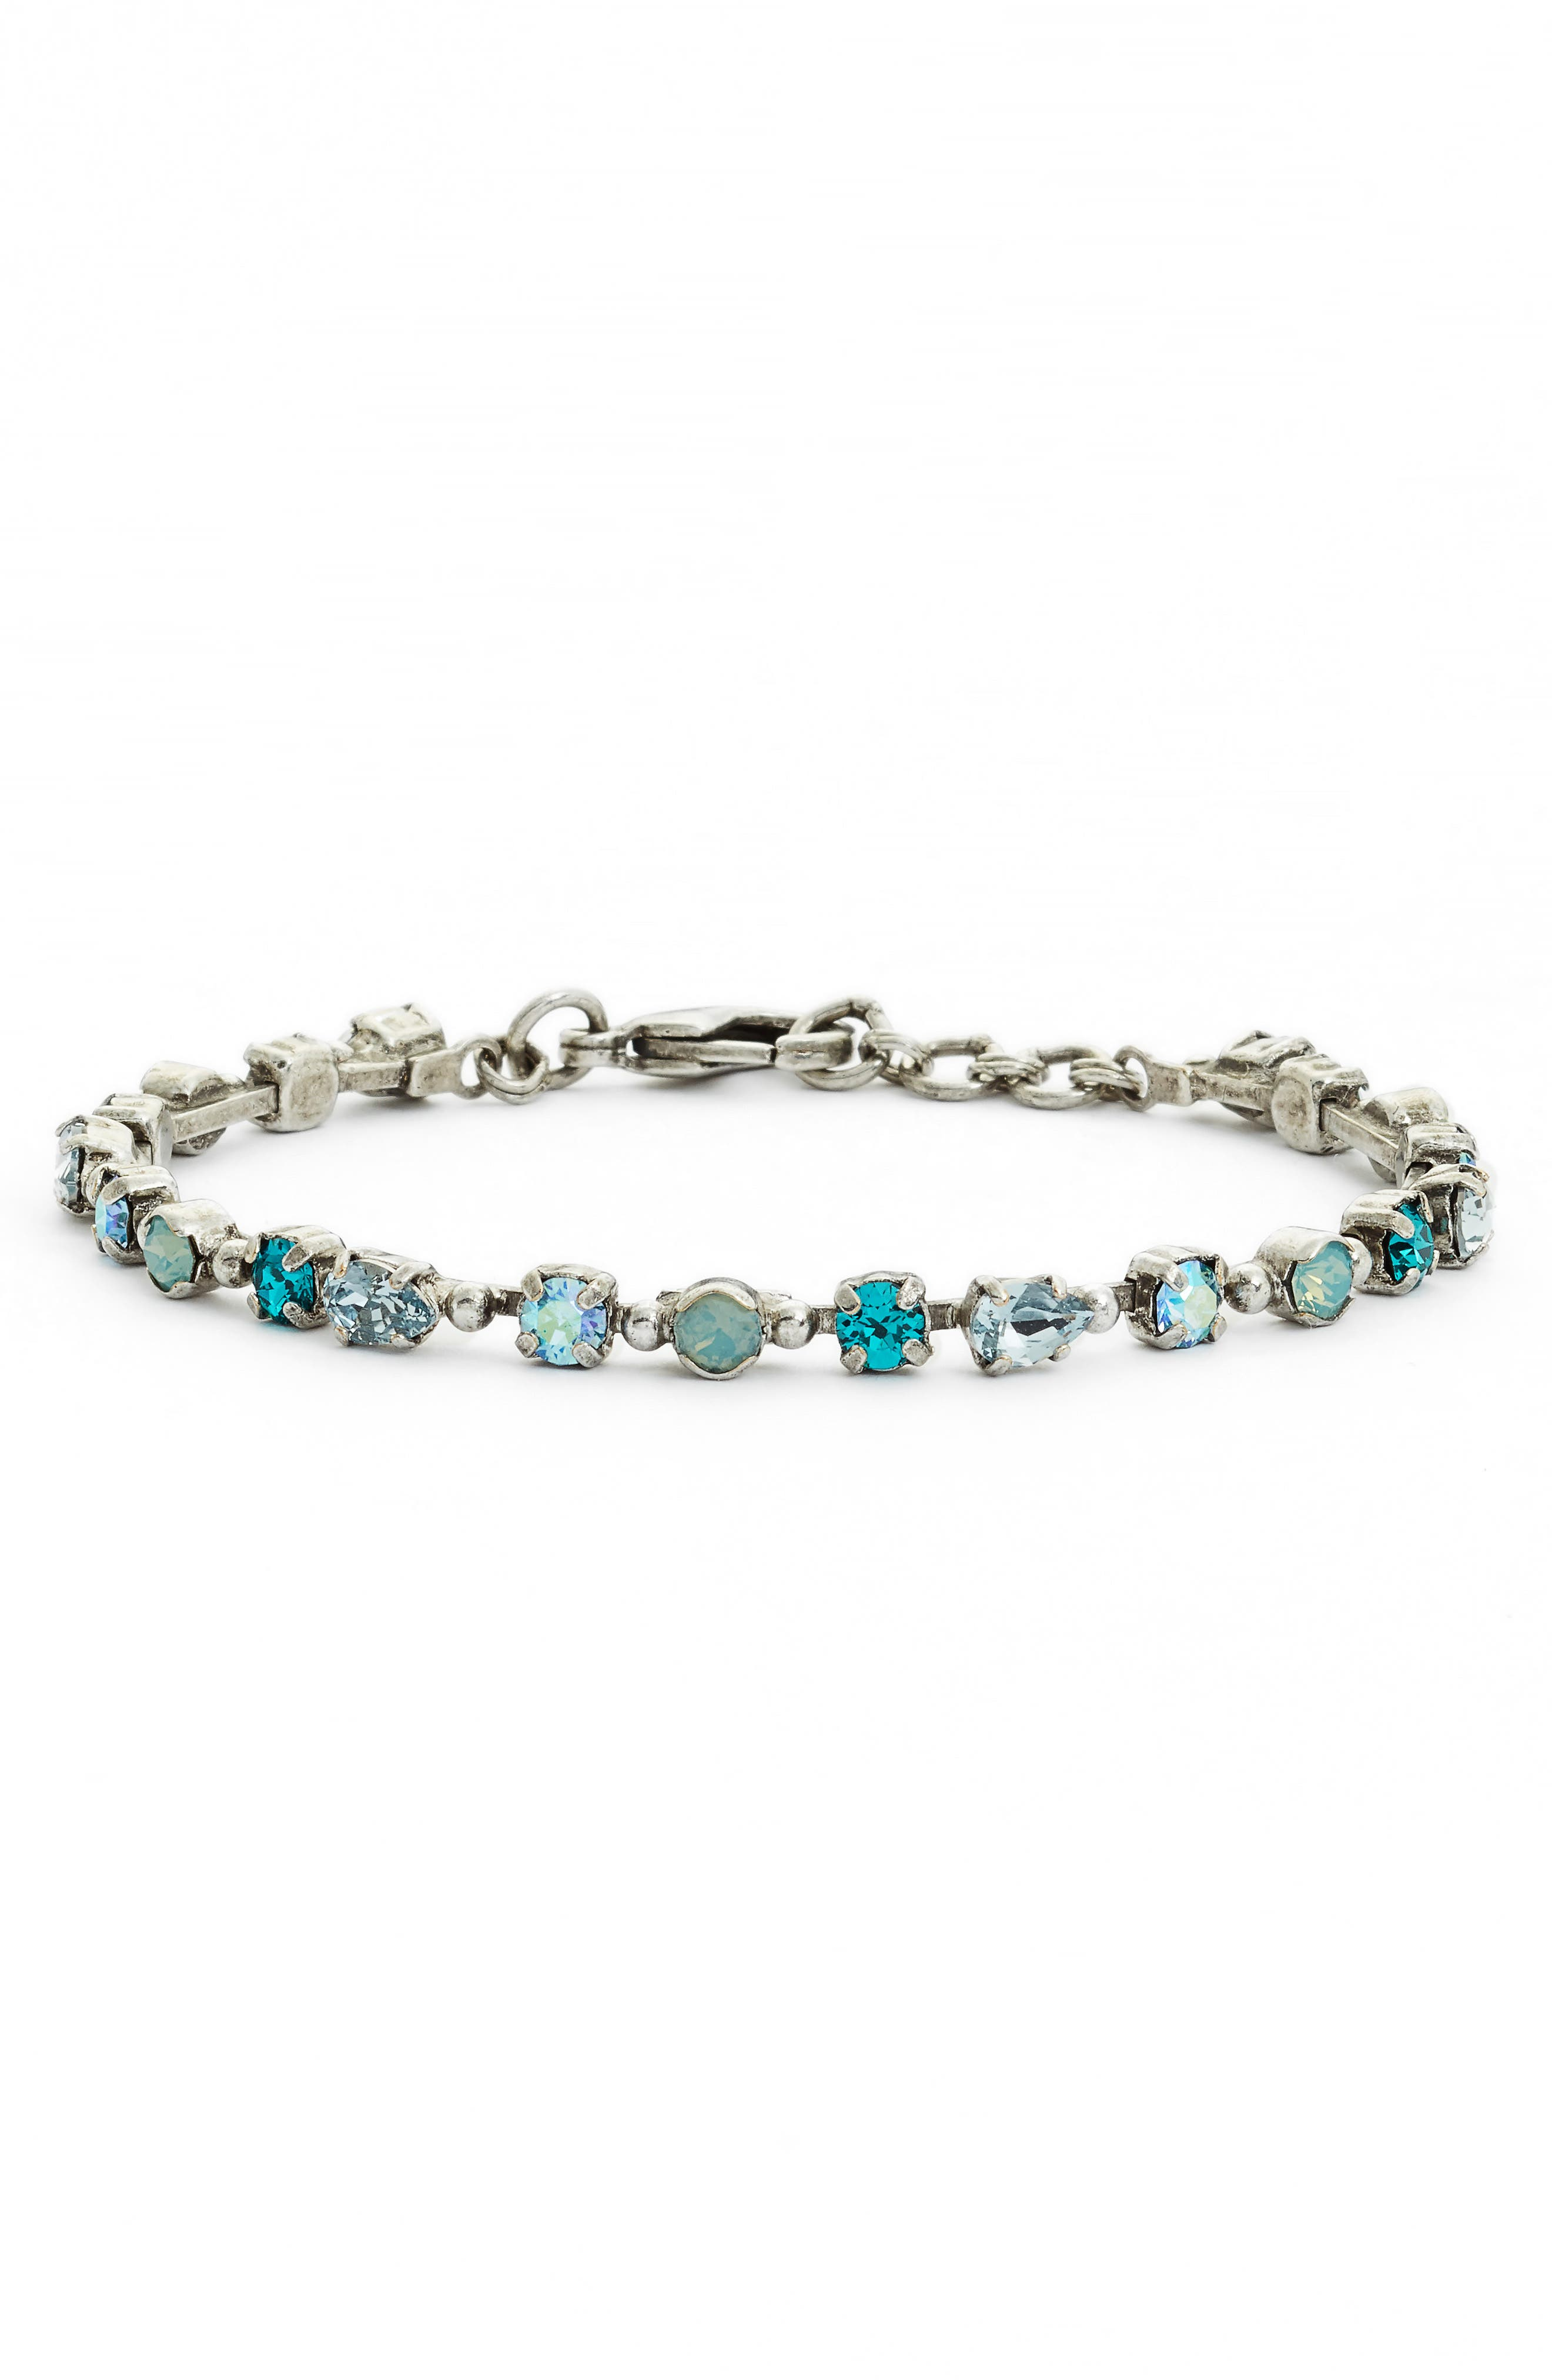 Straight & Narrow Crystal Tennis Bracelet,                         Main,                         color, Blue-Green